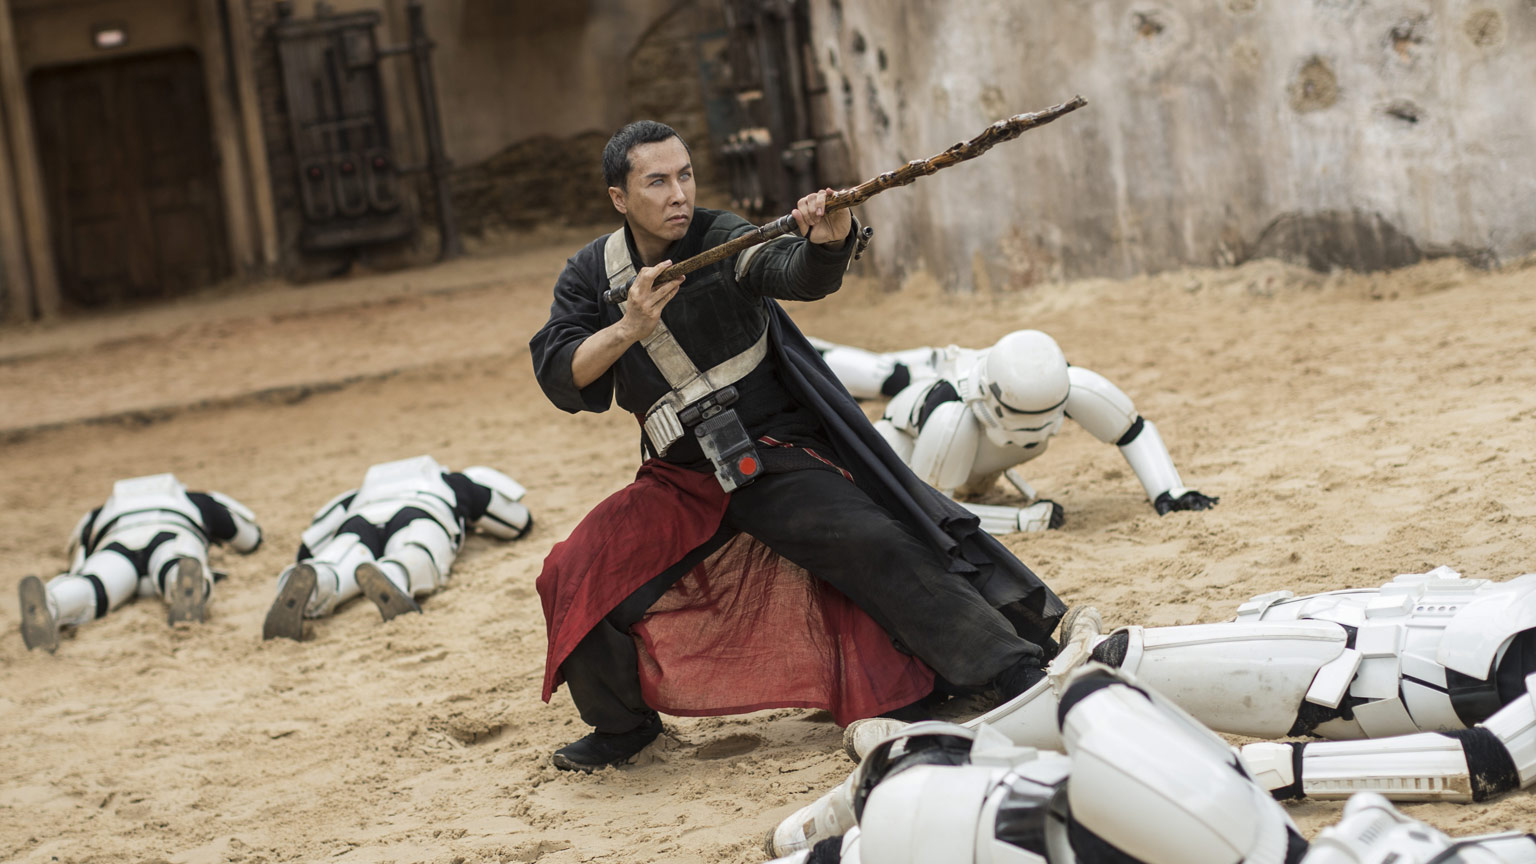 The mystical staff fighter Chirrut Îmwe, surrounded by downed stormtroopers in  Rogue One: A Star Wars Story.  I am so glad this movie had a second Chinese guy who acted completely different standing right next to him all the time, or I wouldn't have been able to get over the stereotype and enjoy Donnie Yen's performance.